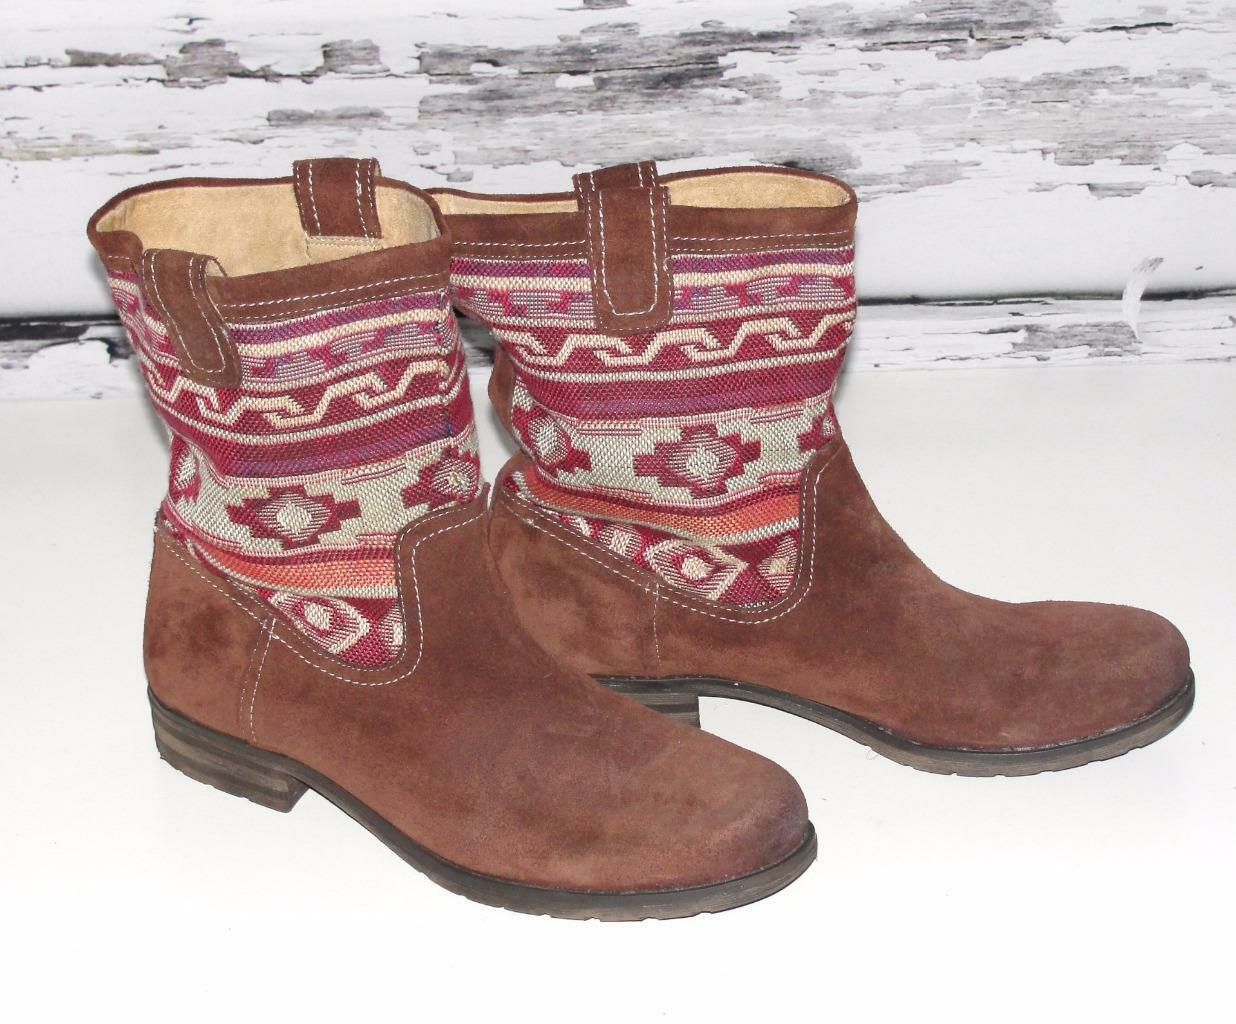 NATURALIZERSUEDE LEATHER TRIBAL WESTERN AZTEC HIPPIE SLOUCHY FLAT BOOTS11M